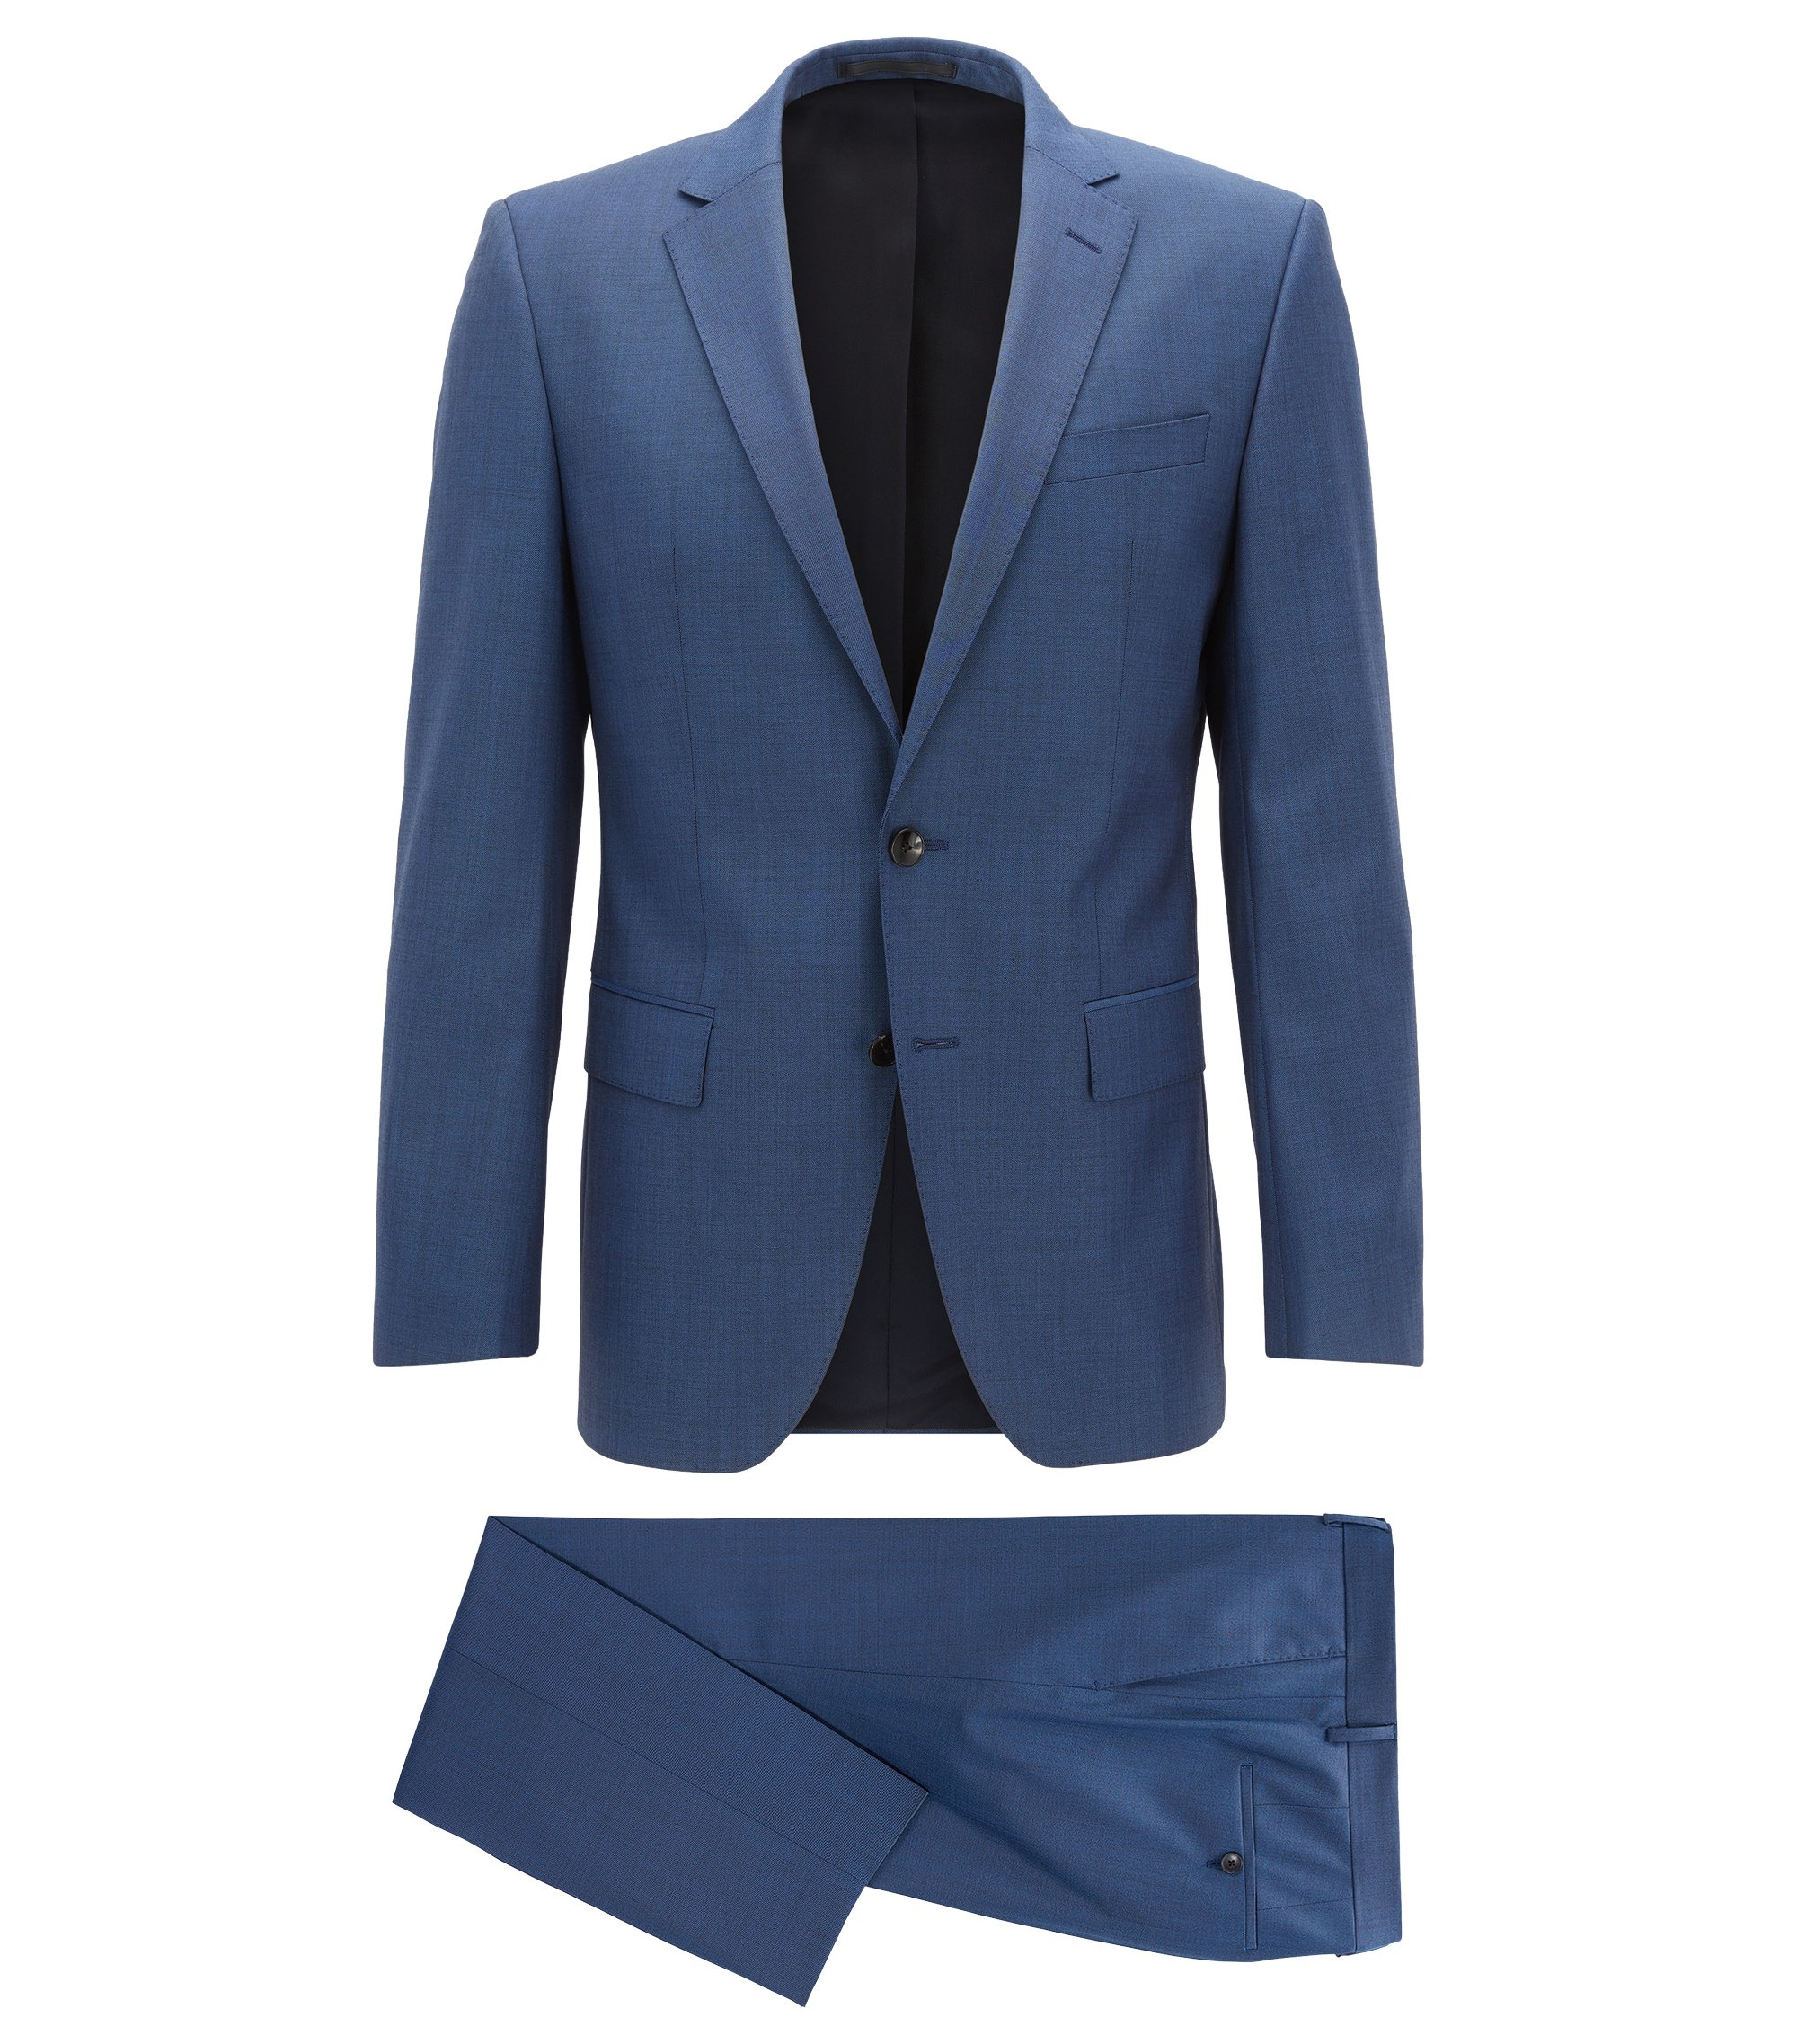 Virgin Wool Suit, Slim Fit | Huge/Genius, Open Blue